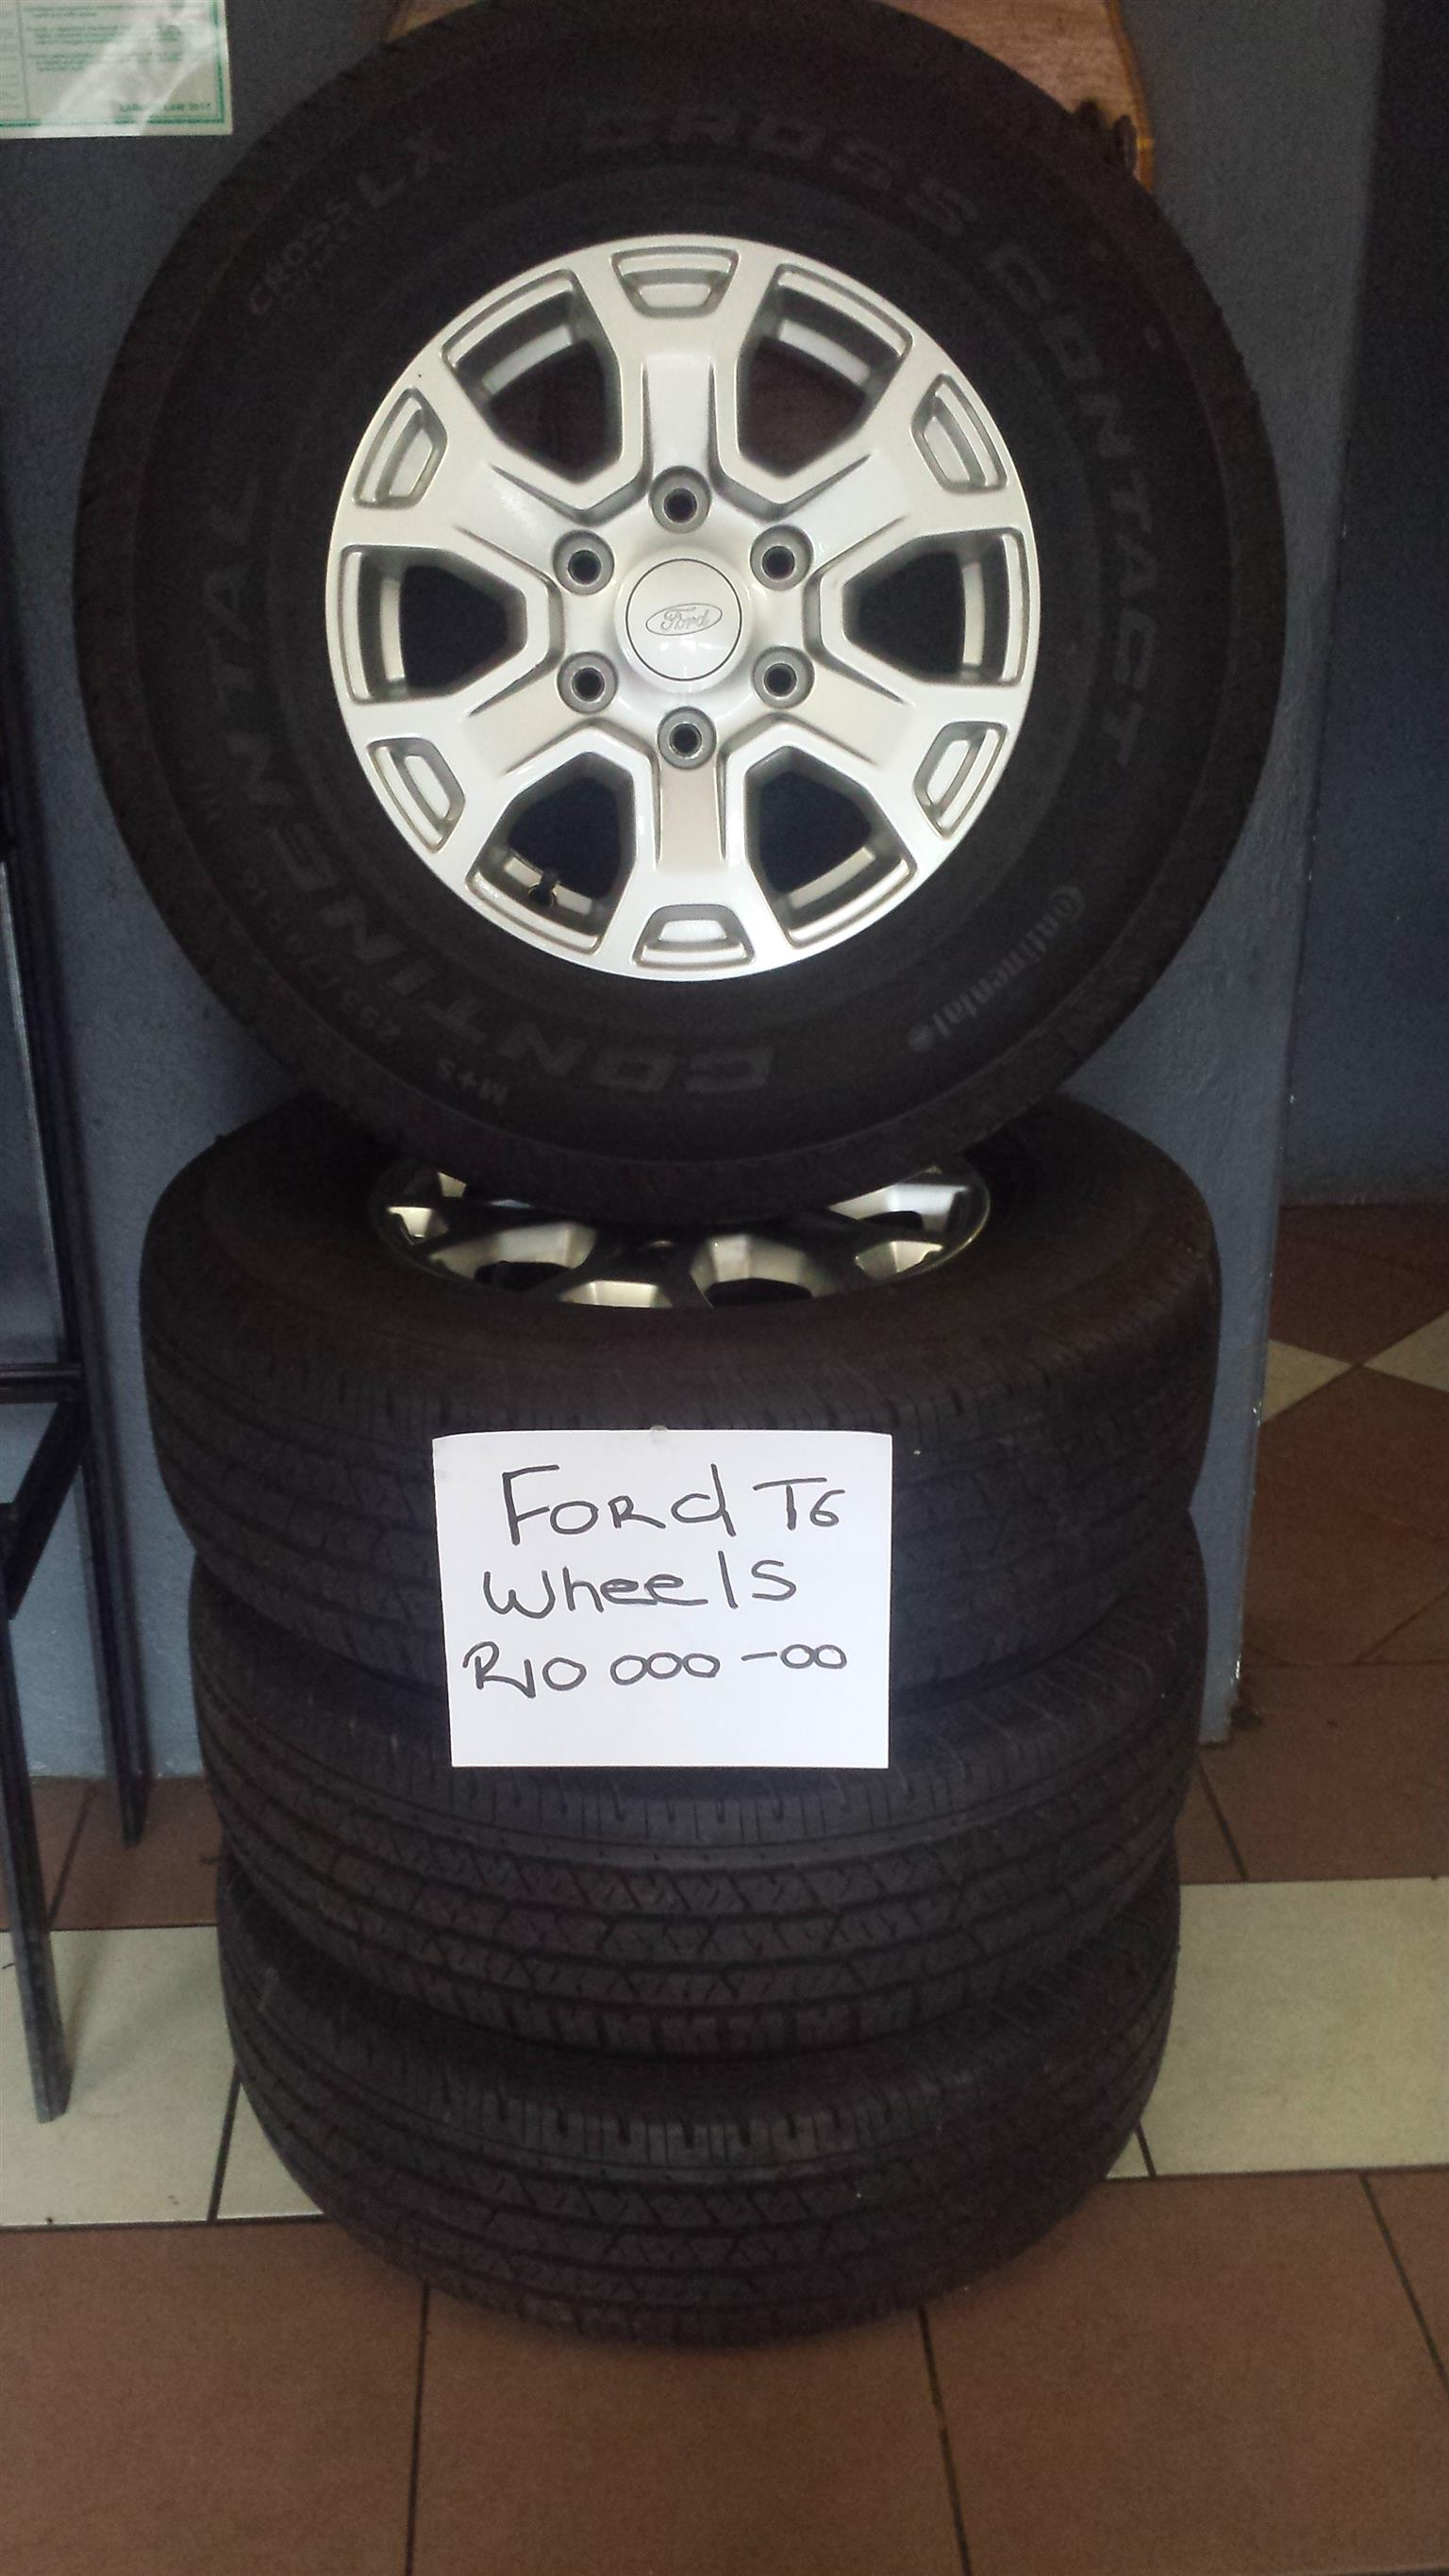 Ford T6 Wheels for sale R10,OOO